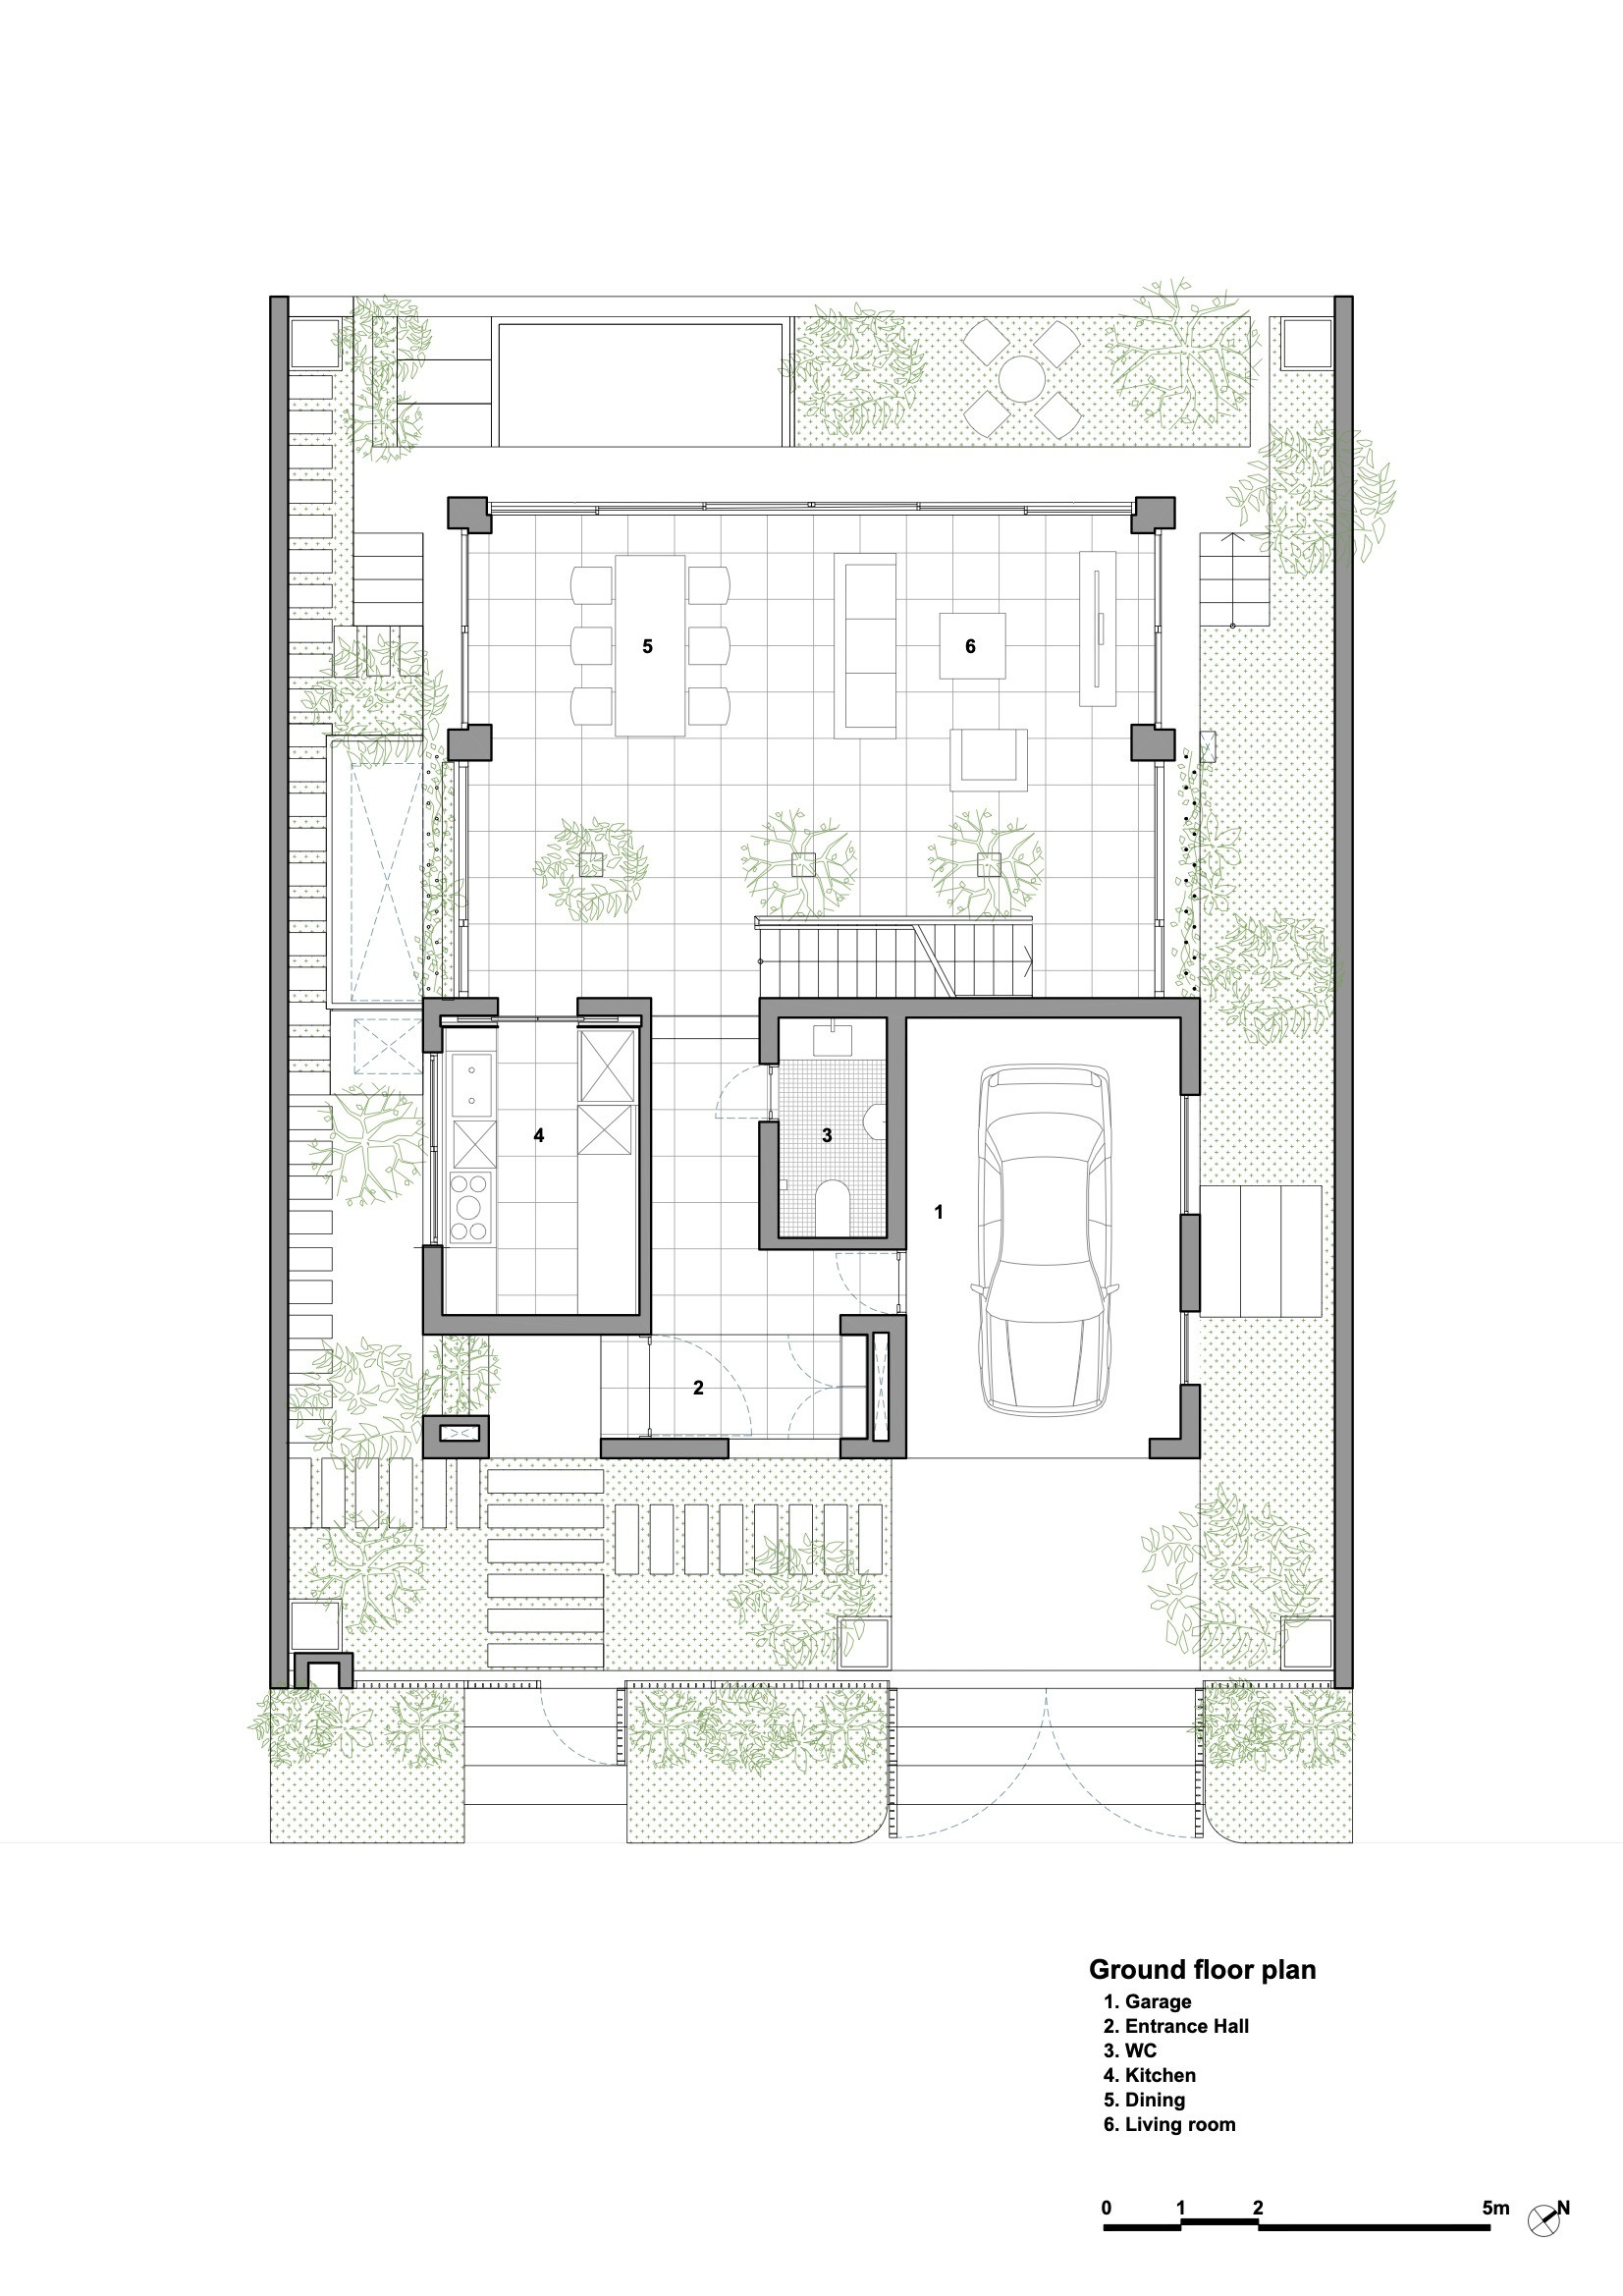 5c20fd7008a5e516a stepping park house vtn architects ground floor plan